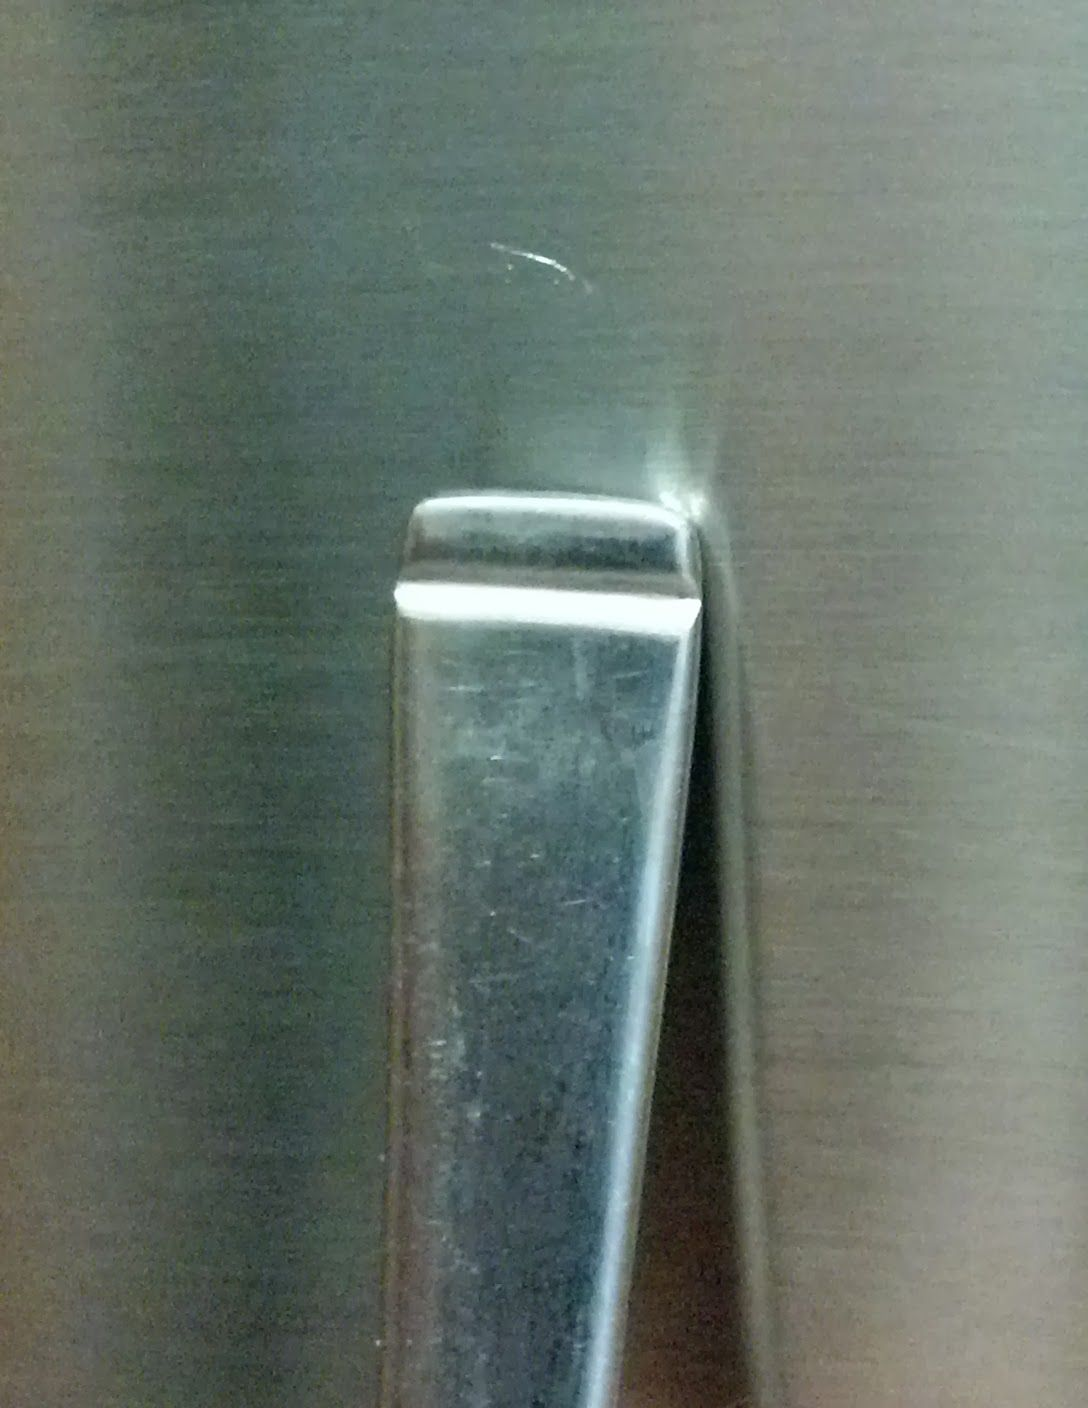 How To Repair Shallow Scratches In Brushed Stainless Steel